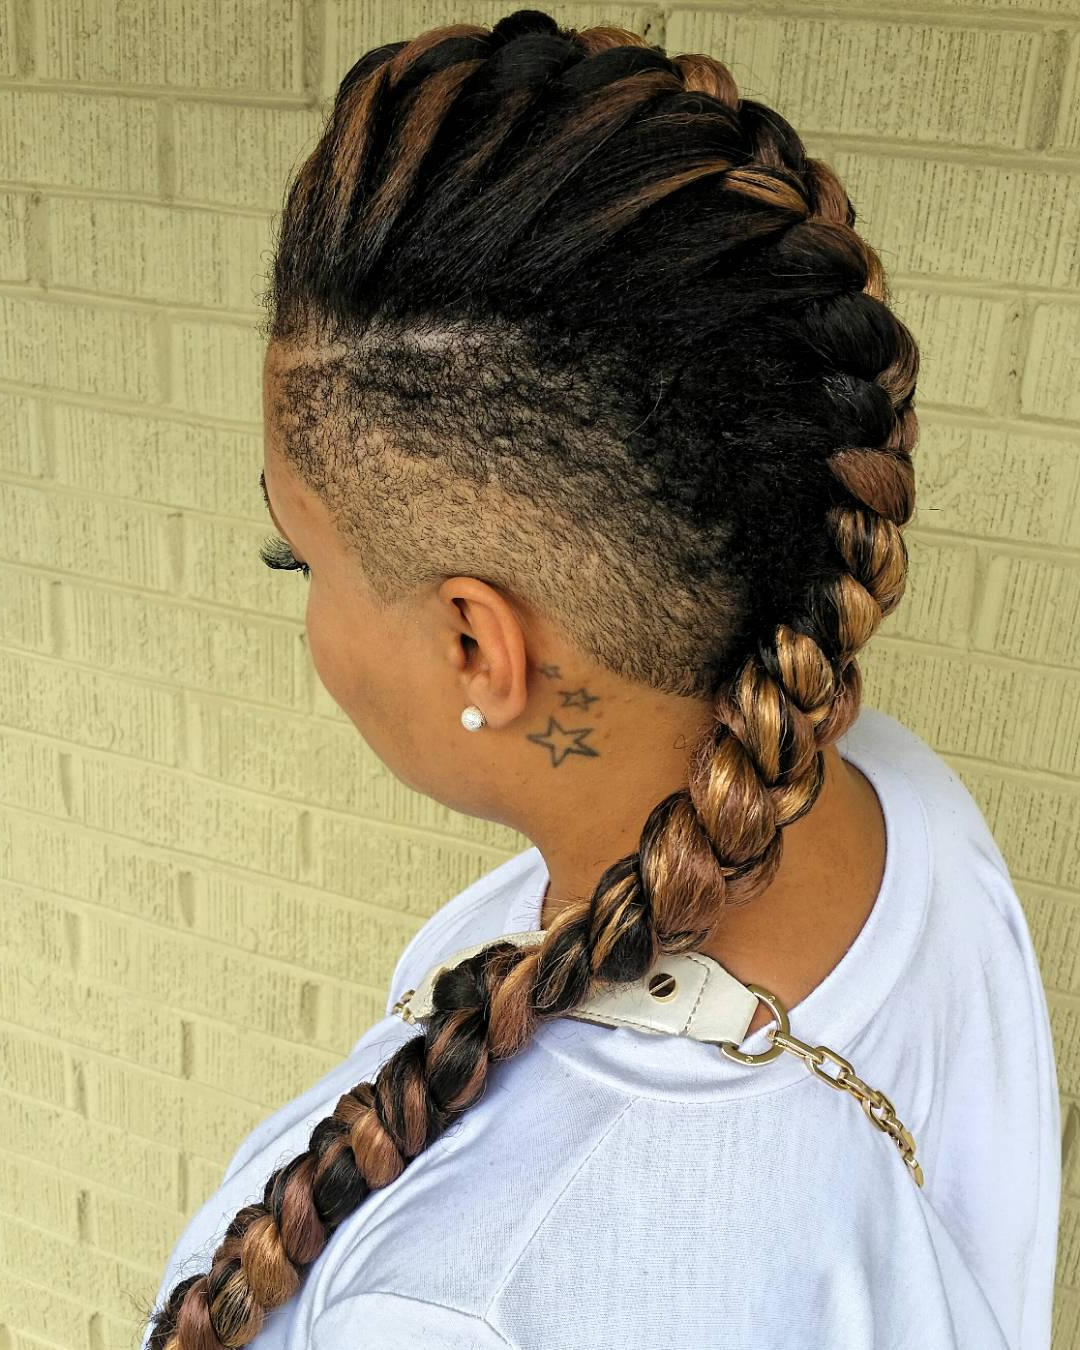 Current Big Braid Mohawk Hairstyles In Mohawk Braids: 12 Braided Mohawk Hairstyles That Get Attention (View 6 of 20)